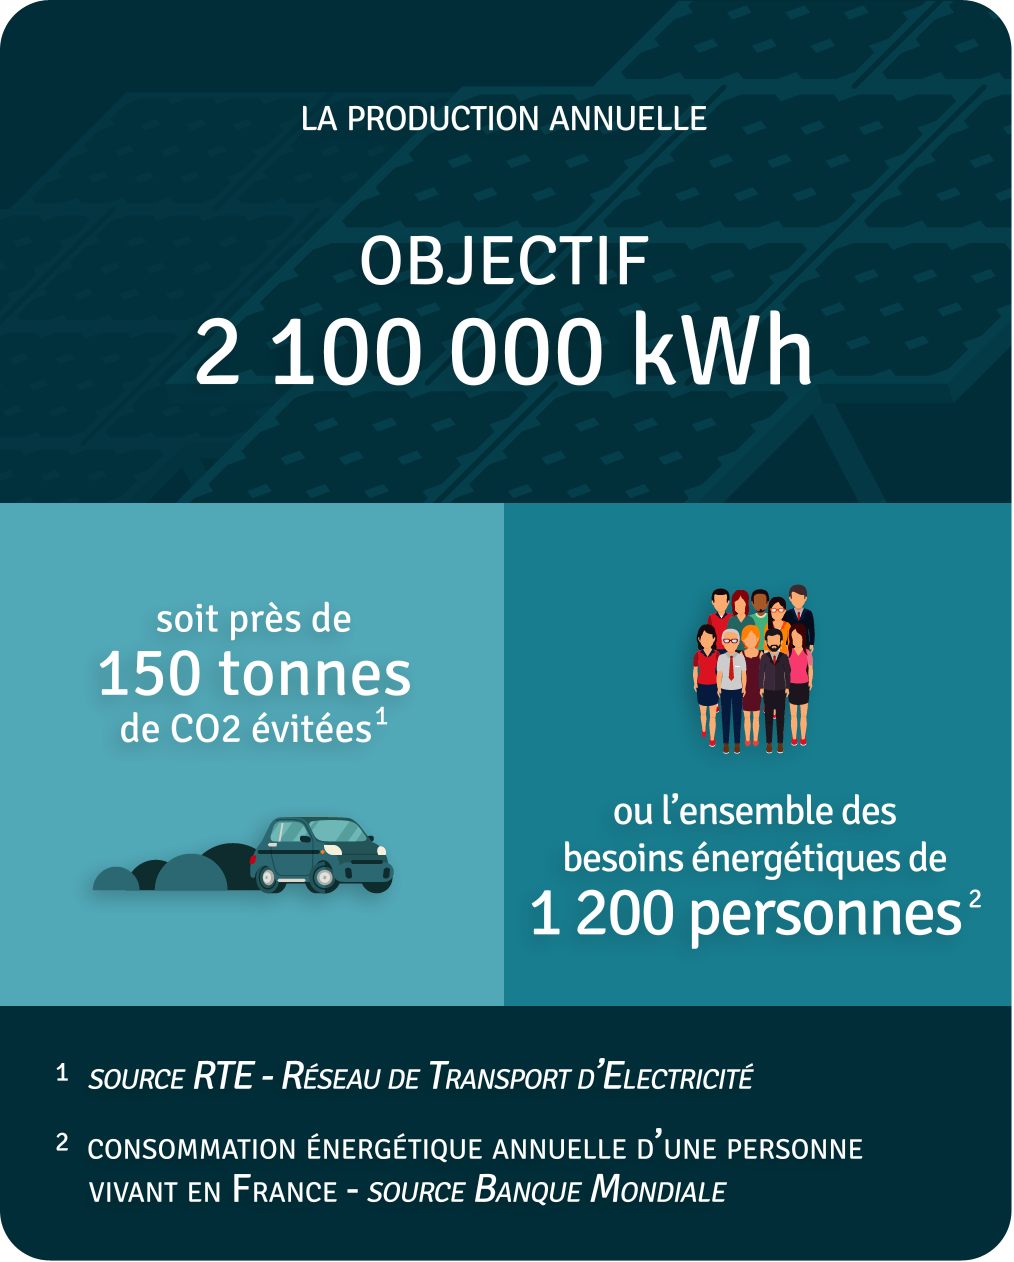 Production annuelle 2 100 000 kWh